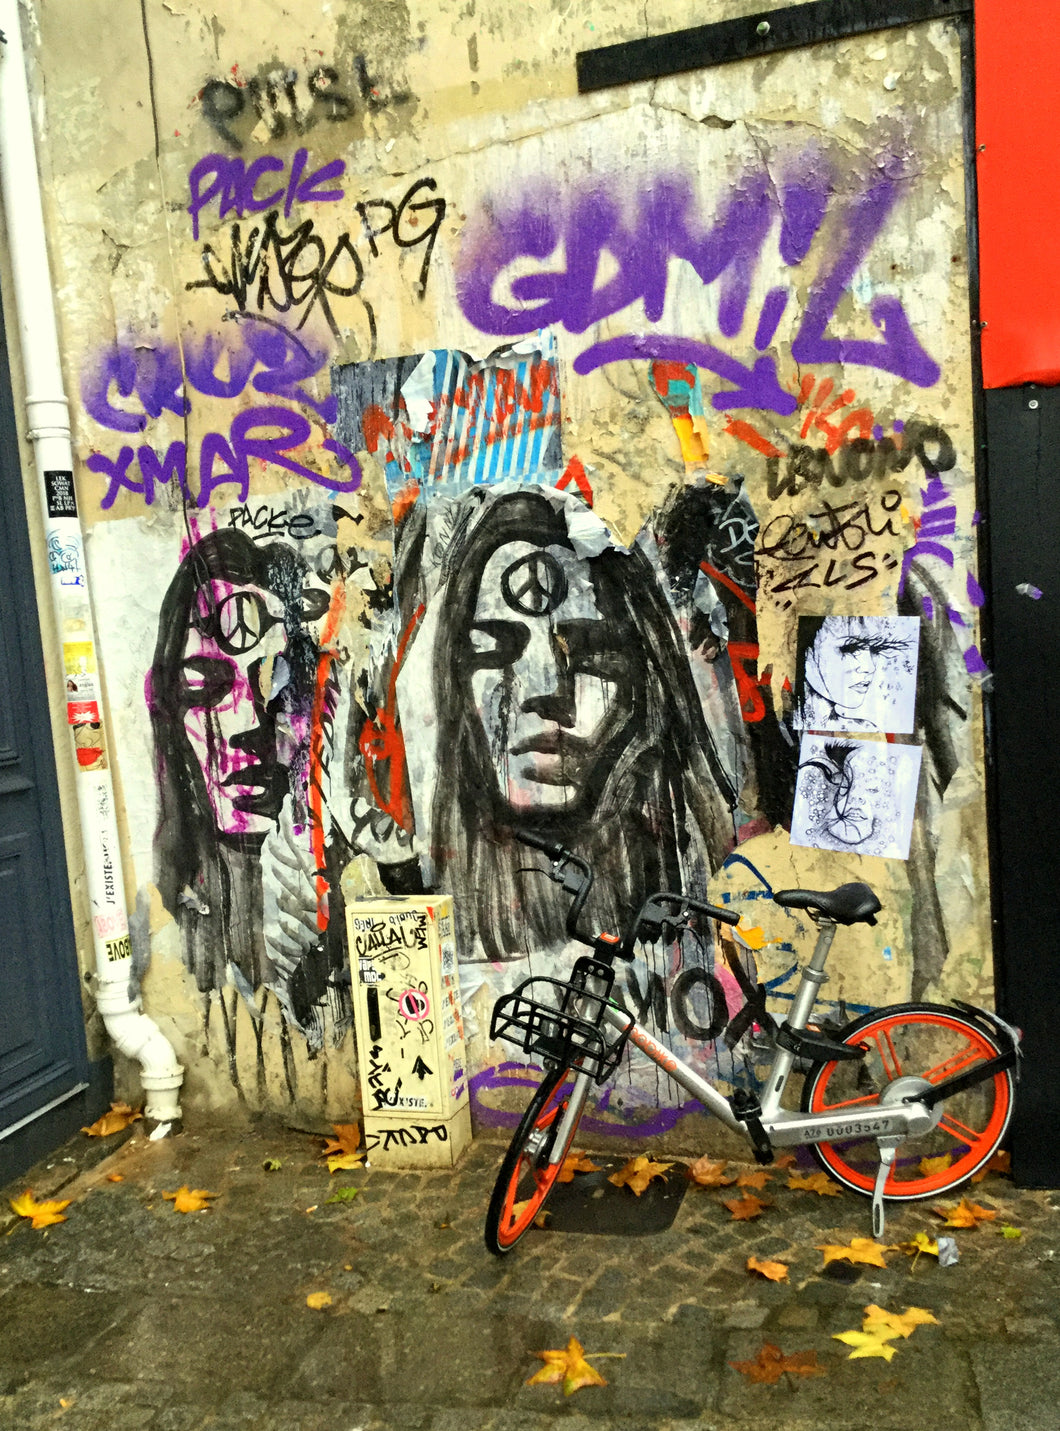 Graffiti with bicycle, Paris, France